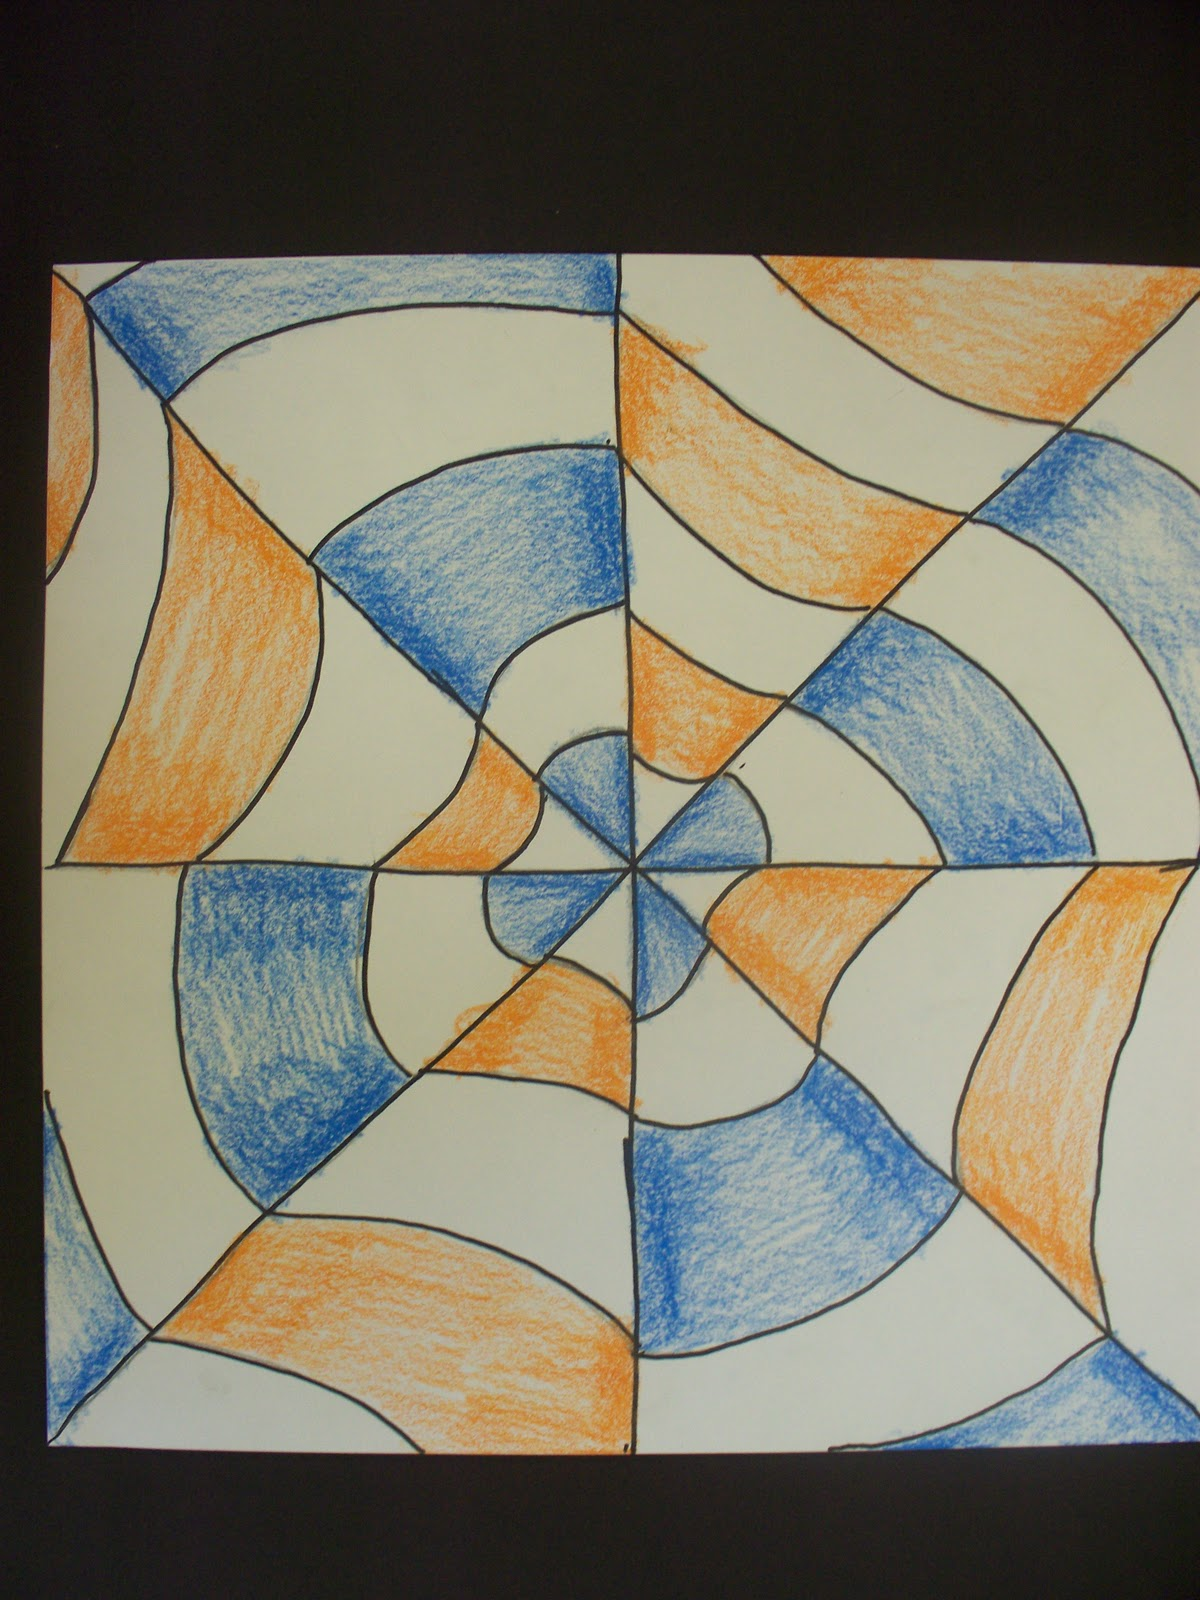 Creating Art: Optical Illusions